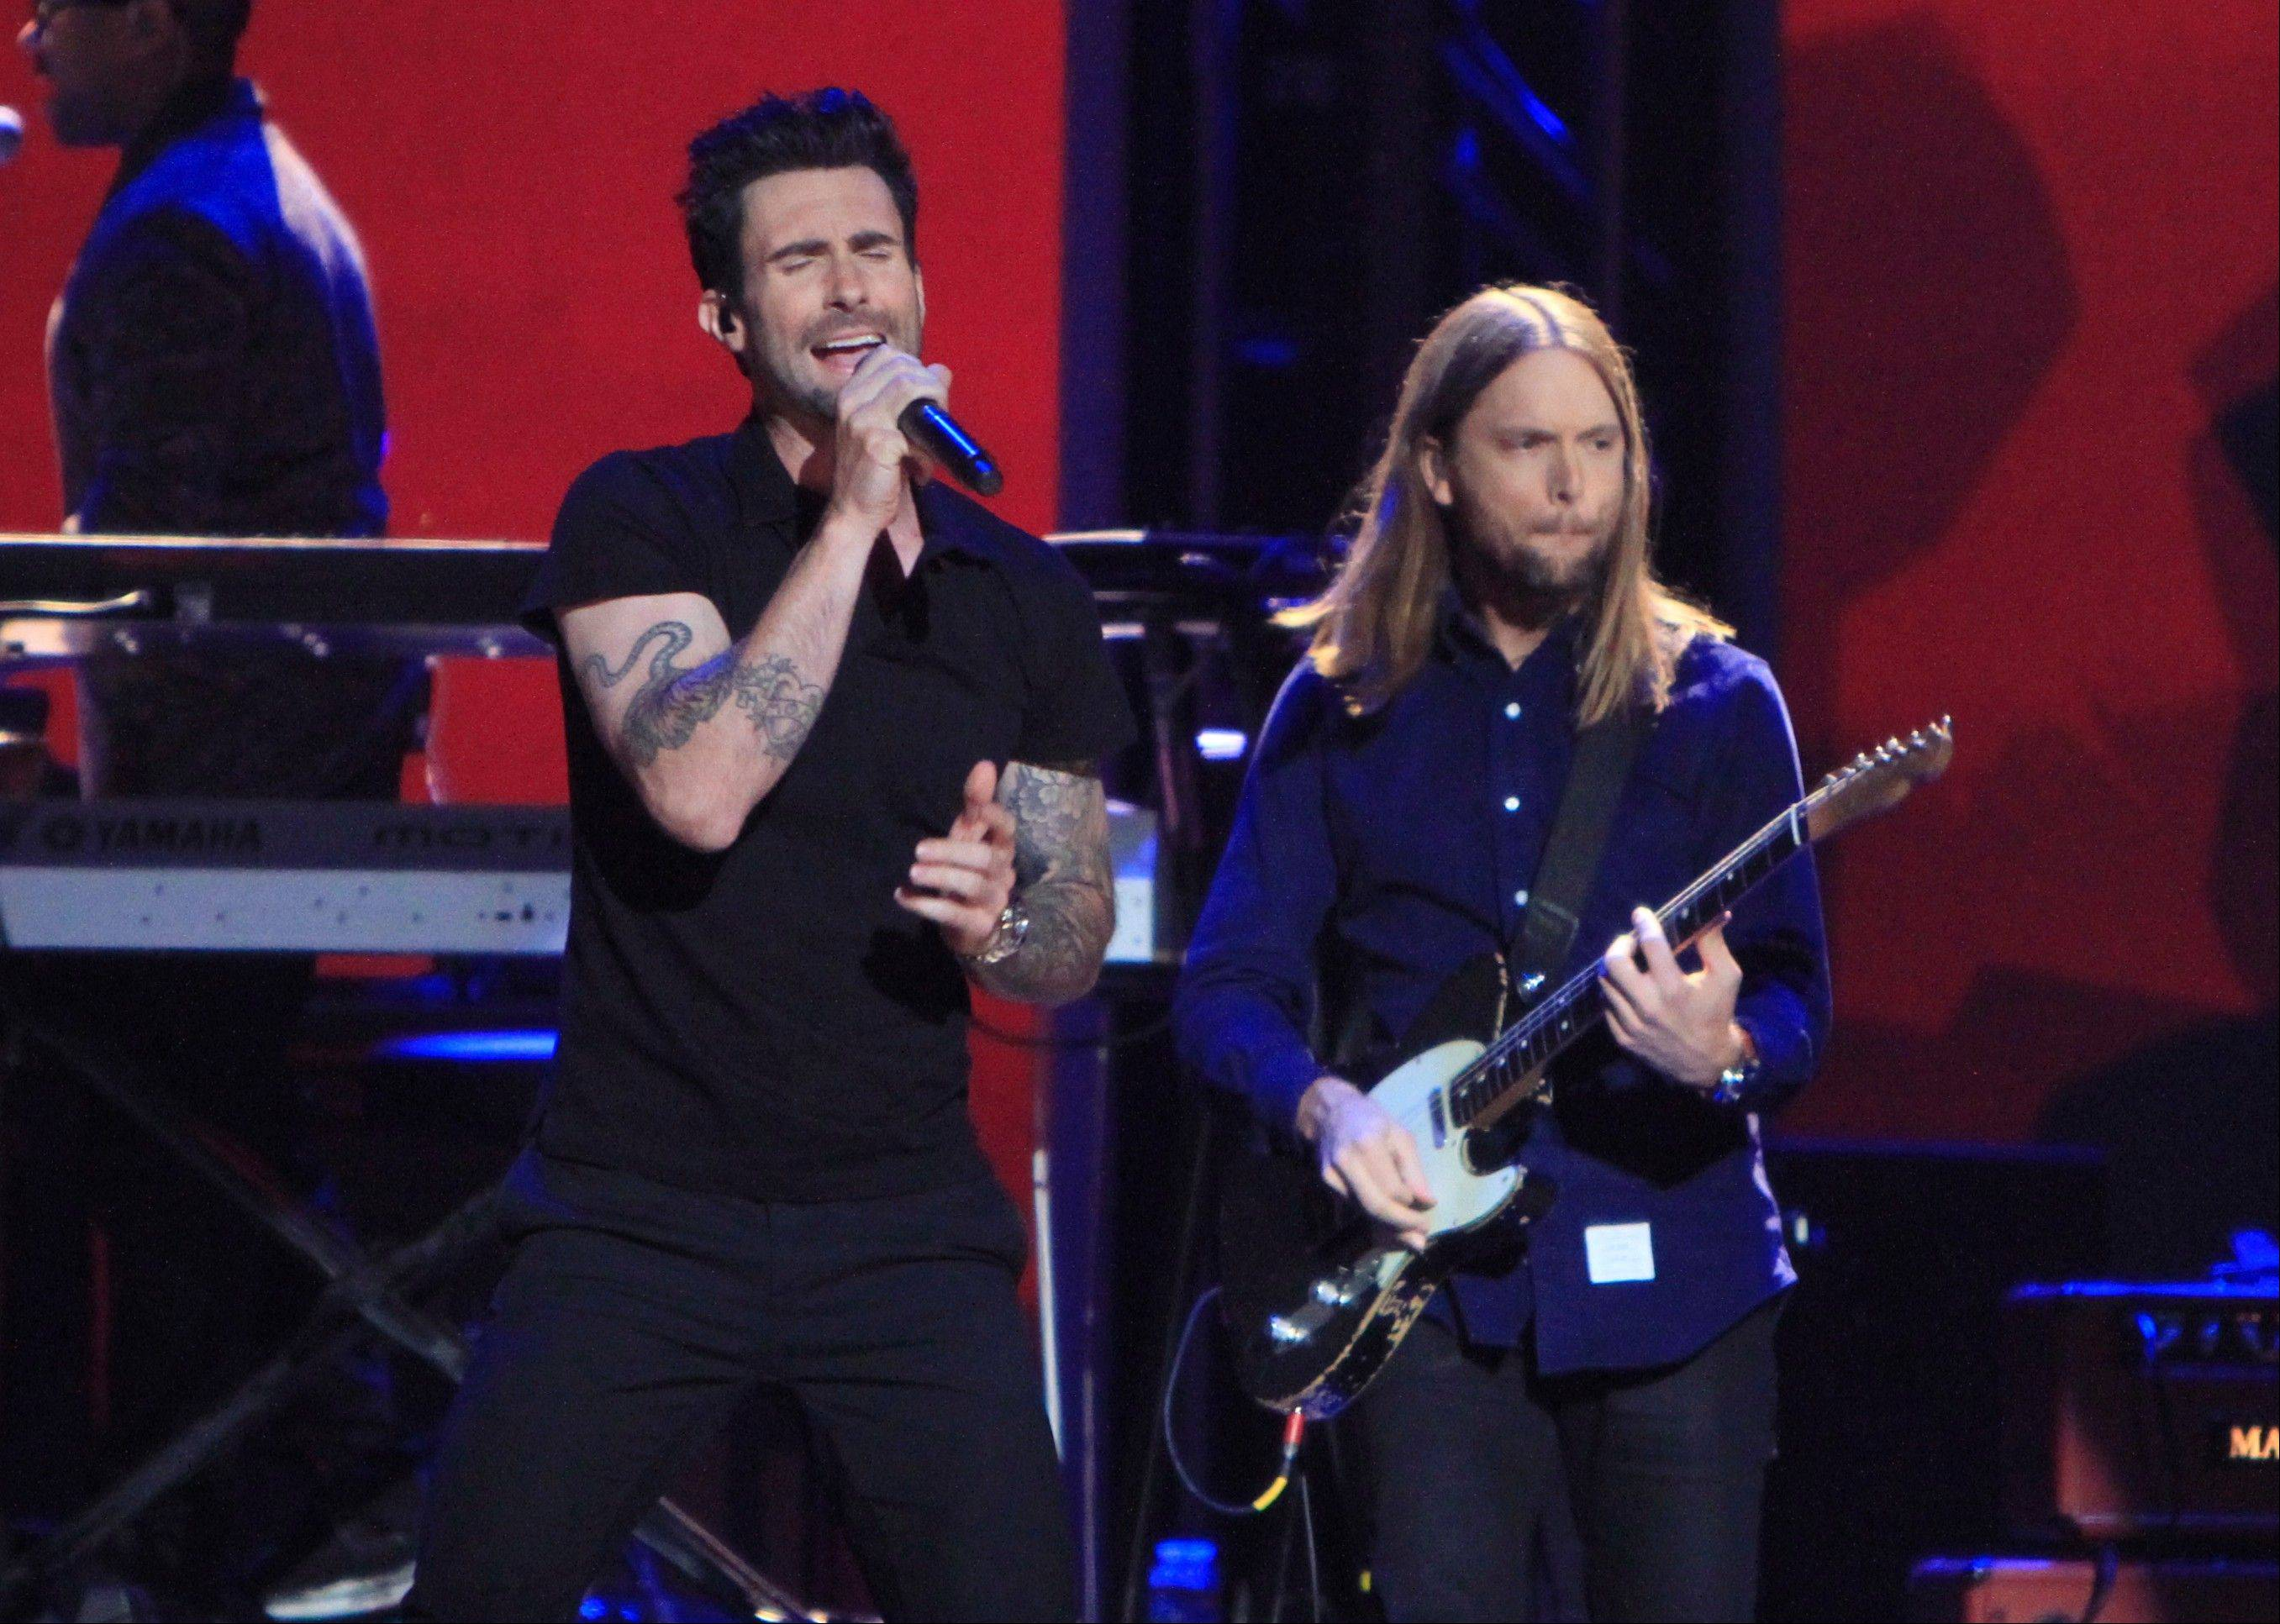 Adam Levine, left, James Valentine and the rest of Maroon 5 headline the Allstate Arena in Rosemont on Saturday, April 6.